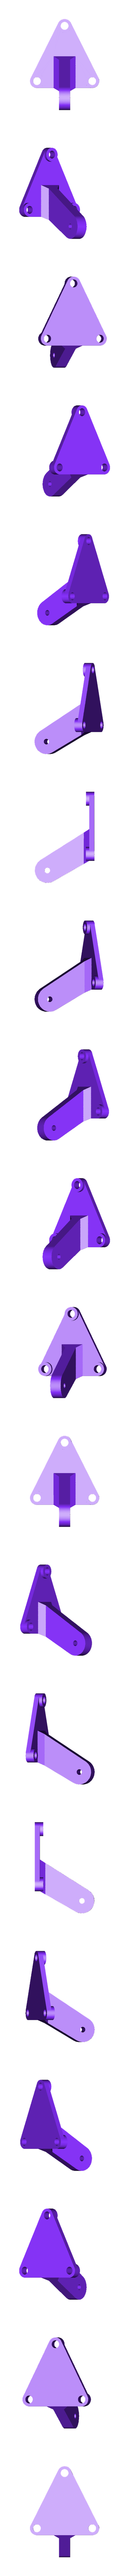 horn.obj Download free OBJ file Horn and qwick links • 3D printable object, PaulDrones